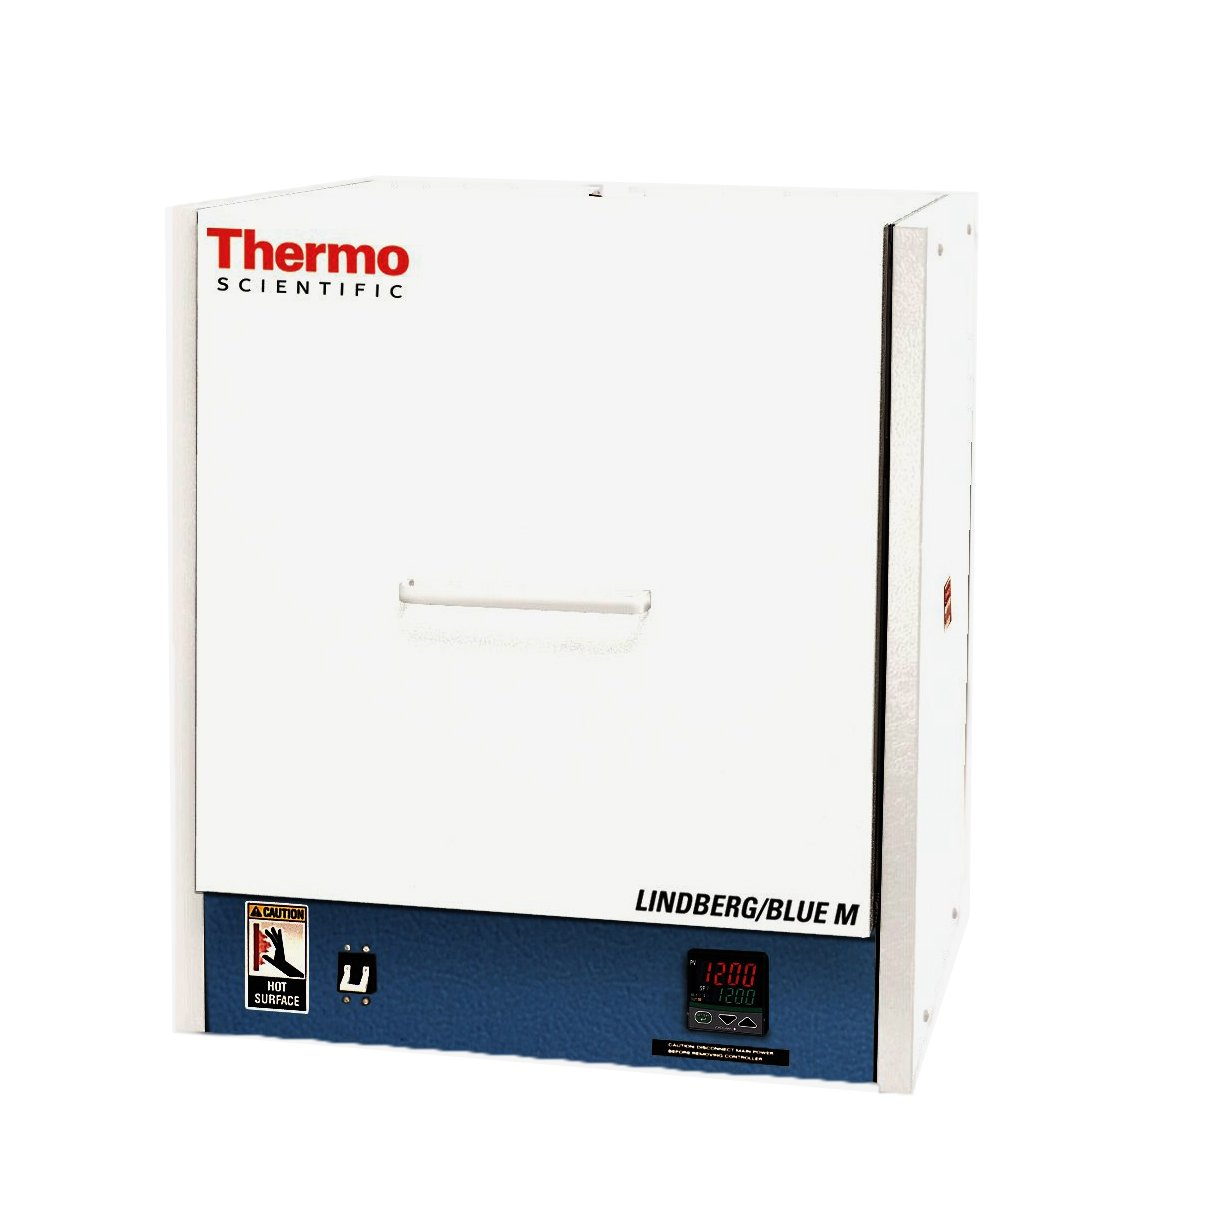 Thermo Scientific BF51841C Lindberg/Blue M LGO Box Furnace with Integrated  Digital Controller, Temperature Range: 100 Degree to 1, 200 Degree C, ...